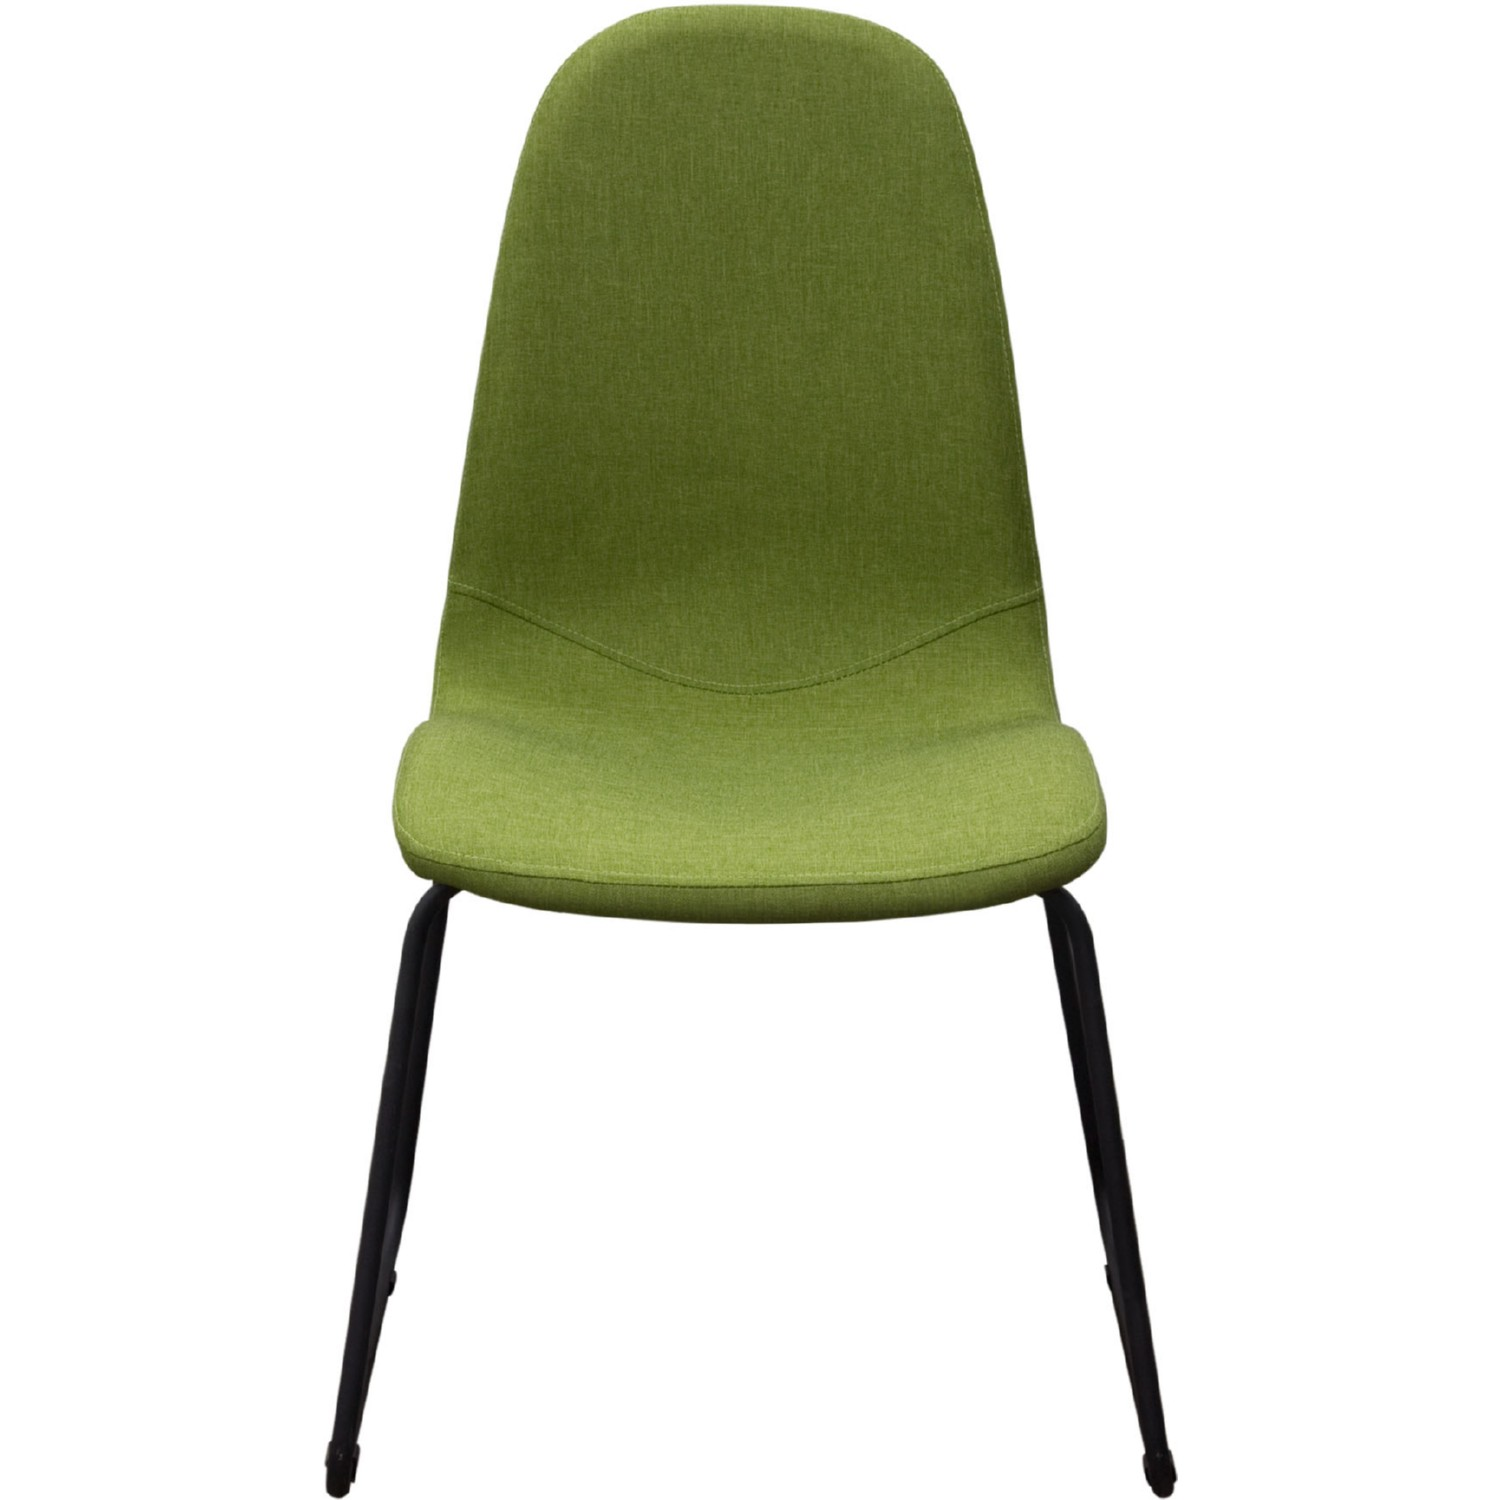 Brilliant Finn Dining Chairs In Green Fabric W Black Powder Coated Metal Leg Set Of 2 By Diamond Sofa Ibusinesslaw Wood Chair Design Ideas Ibusinesslaworg